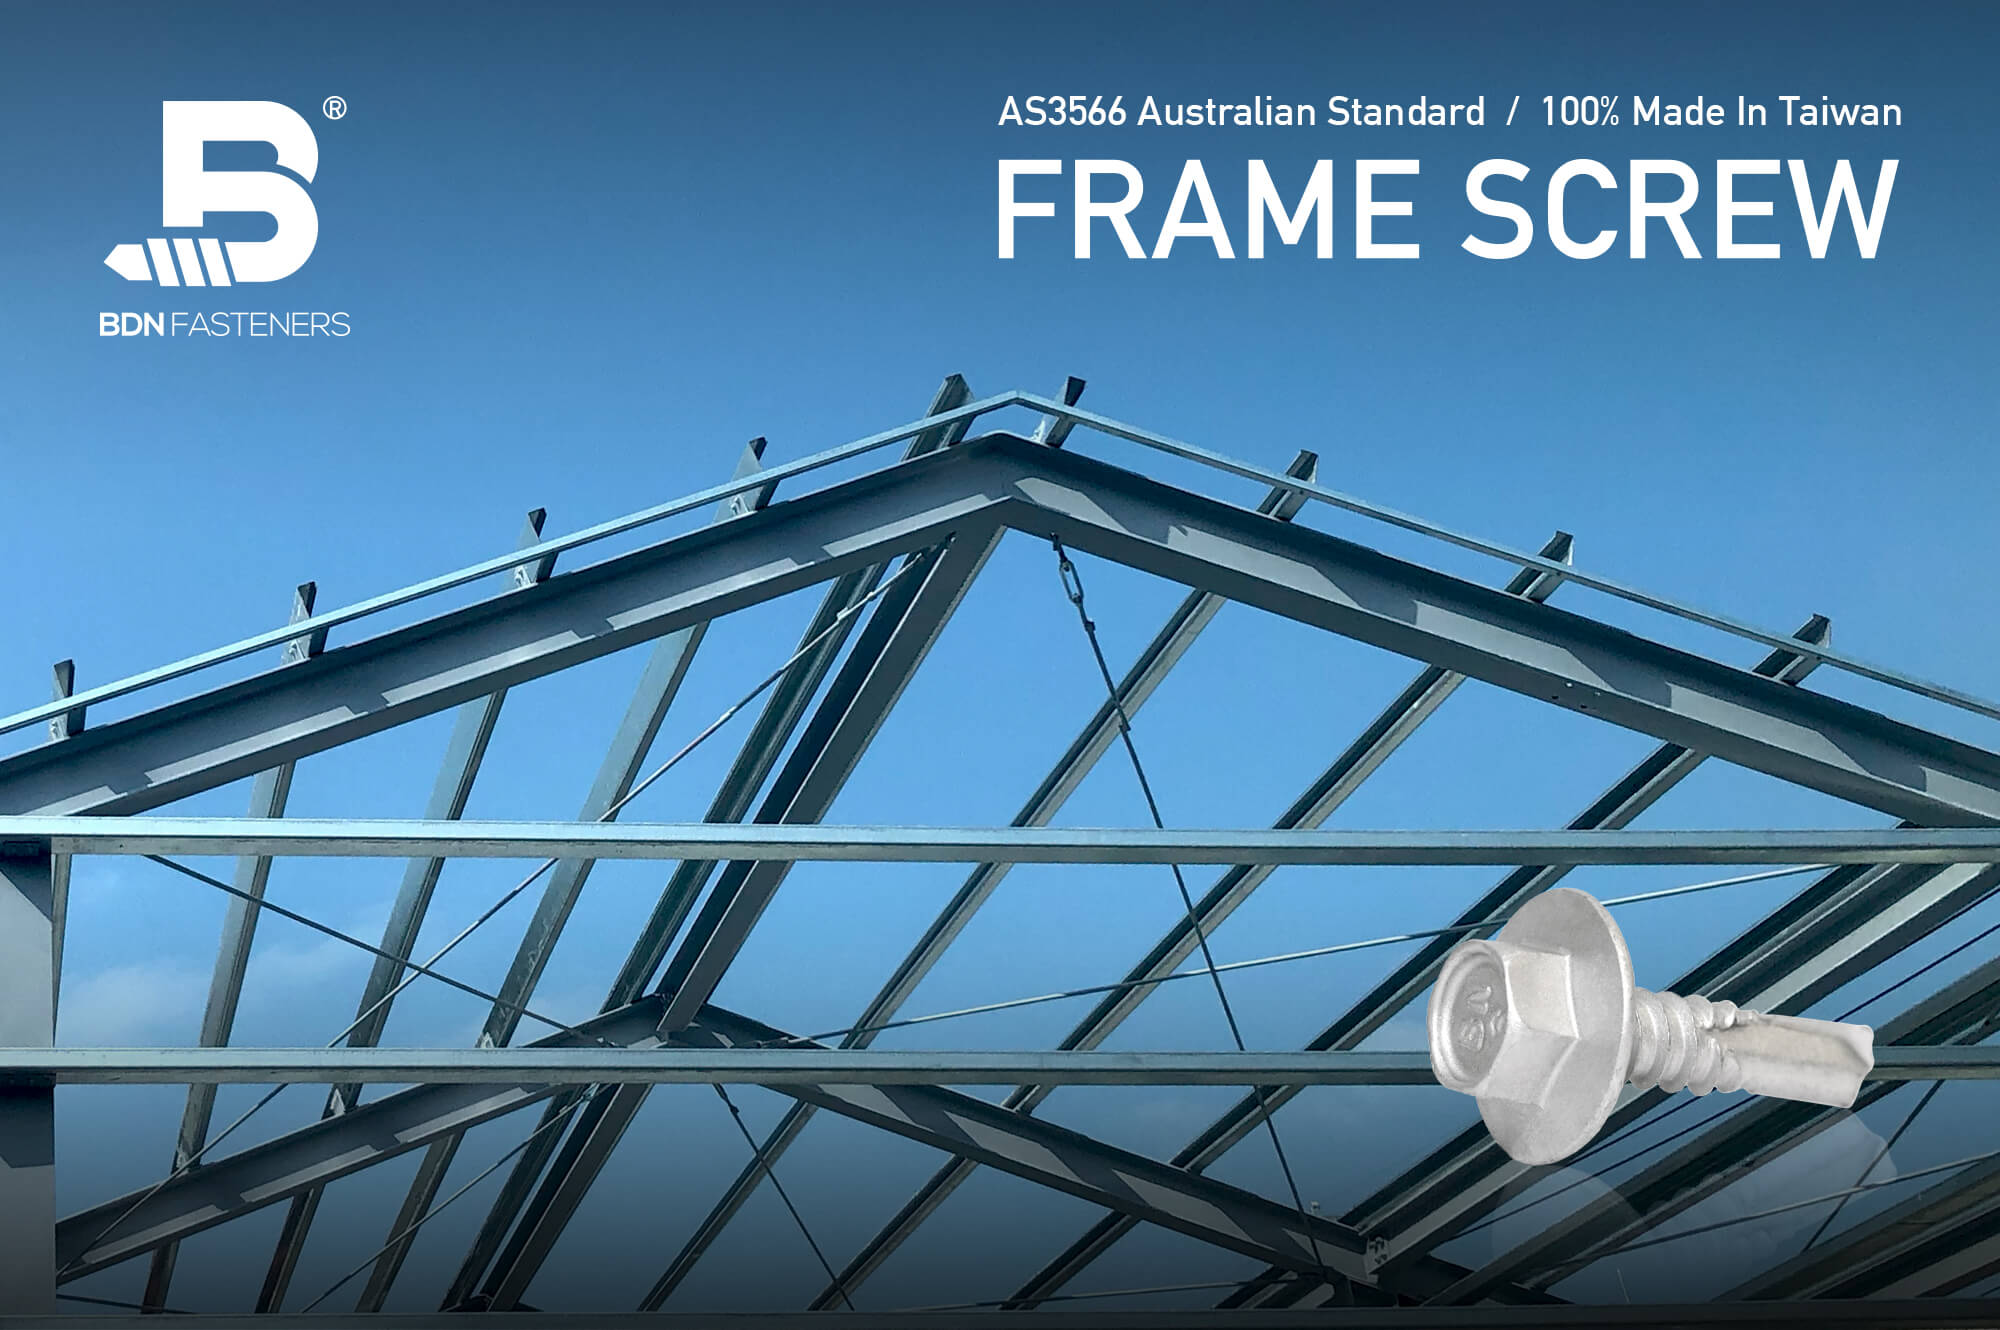 Frame Screw - METAL-Tite™ Truss to plate connection, BDN FASTENERS®